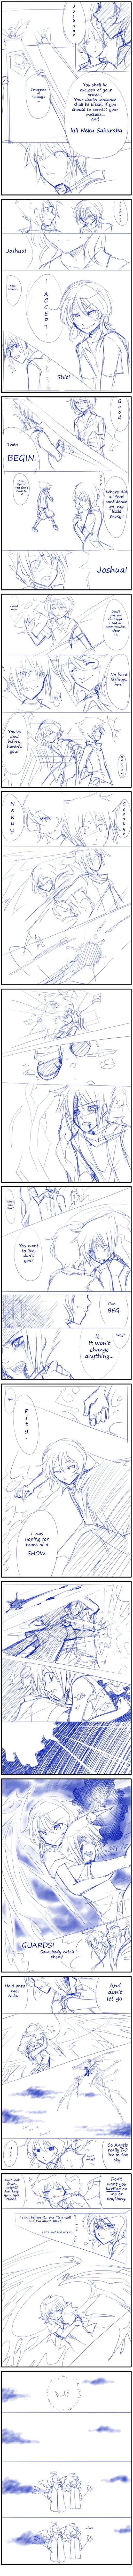 TWEWY: RP Doujin by Zilleniose on DeviantArt